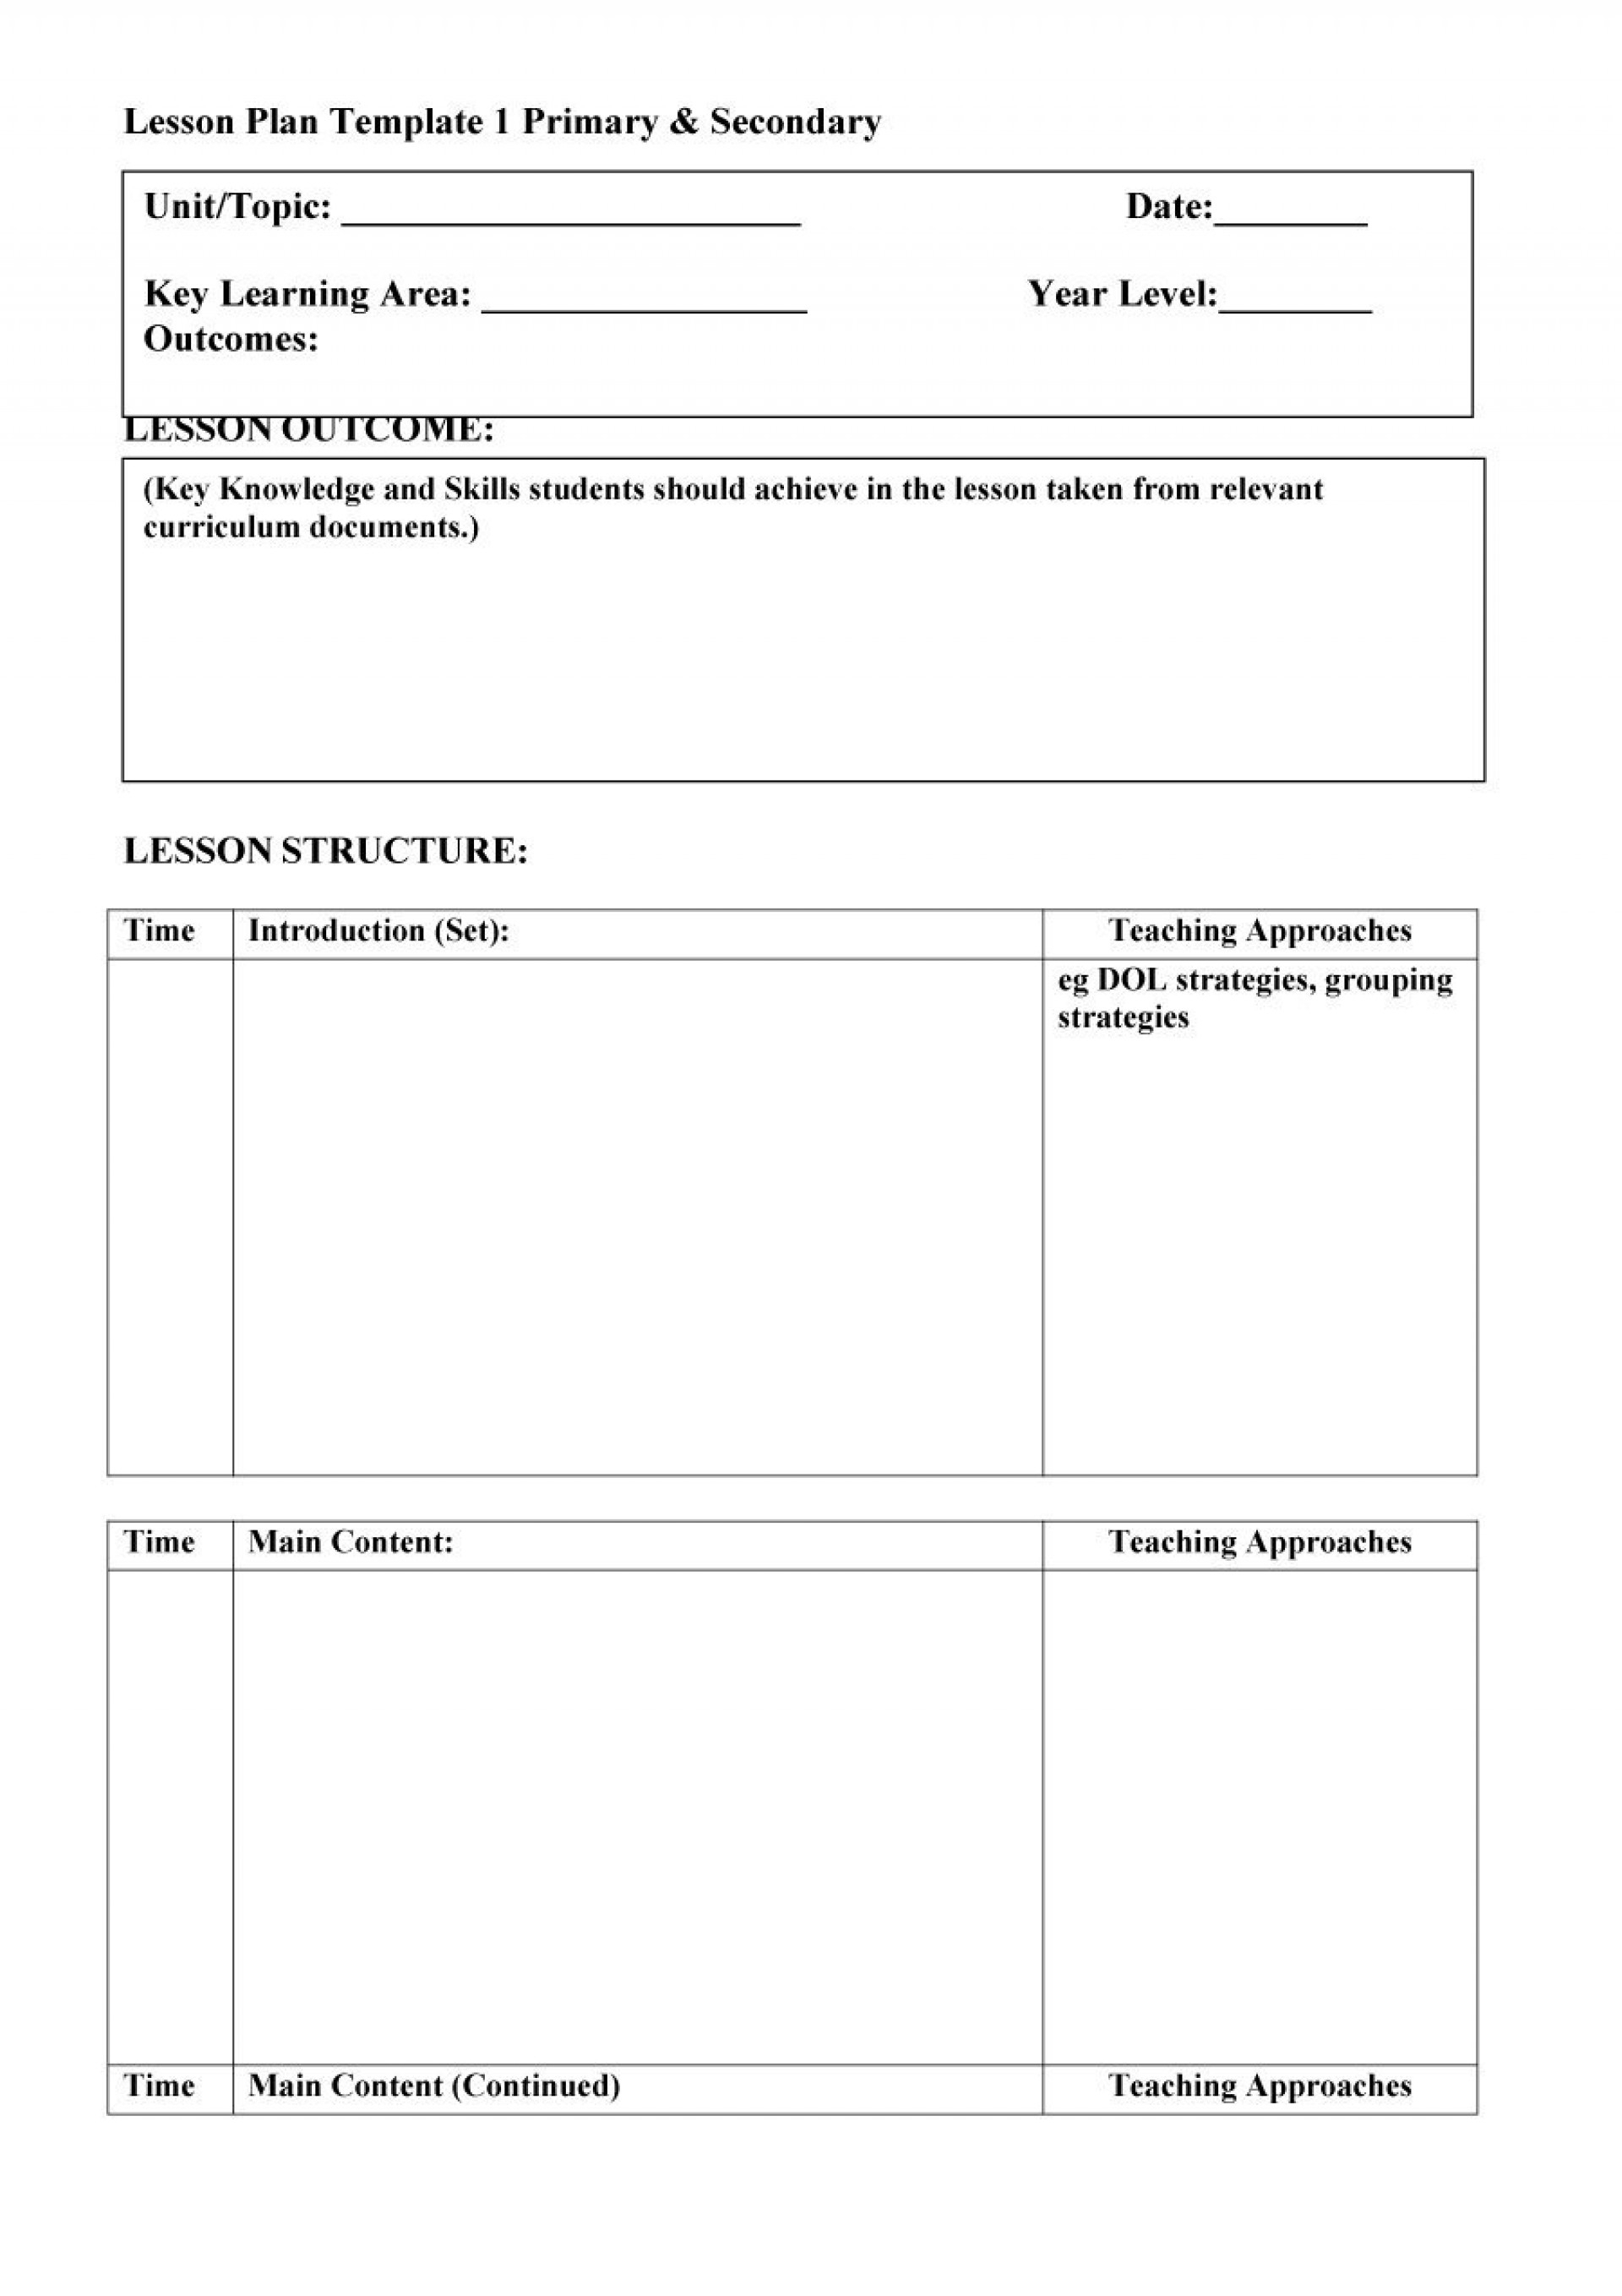 007 Preschool Lesson Plan Template Fascinating Ideas Doc Printable regarding Lesson Plan Template Printable Monthly